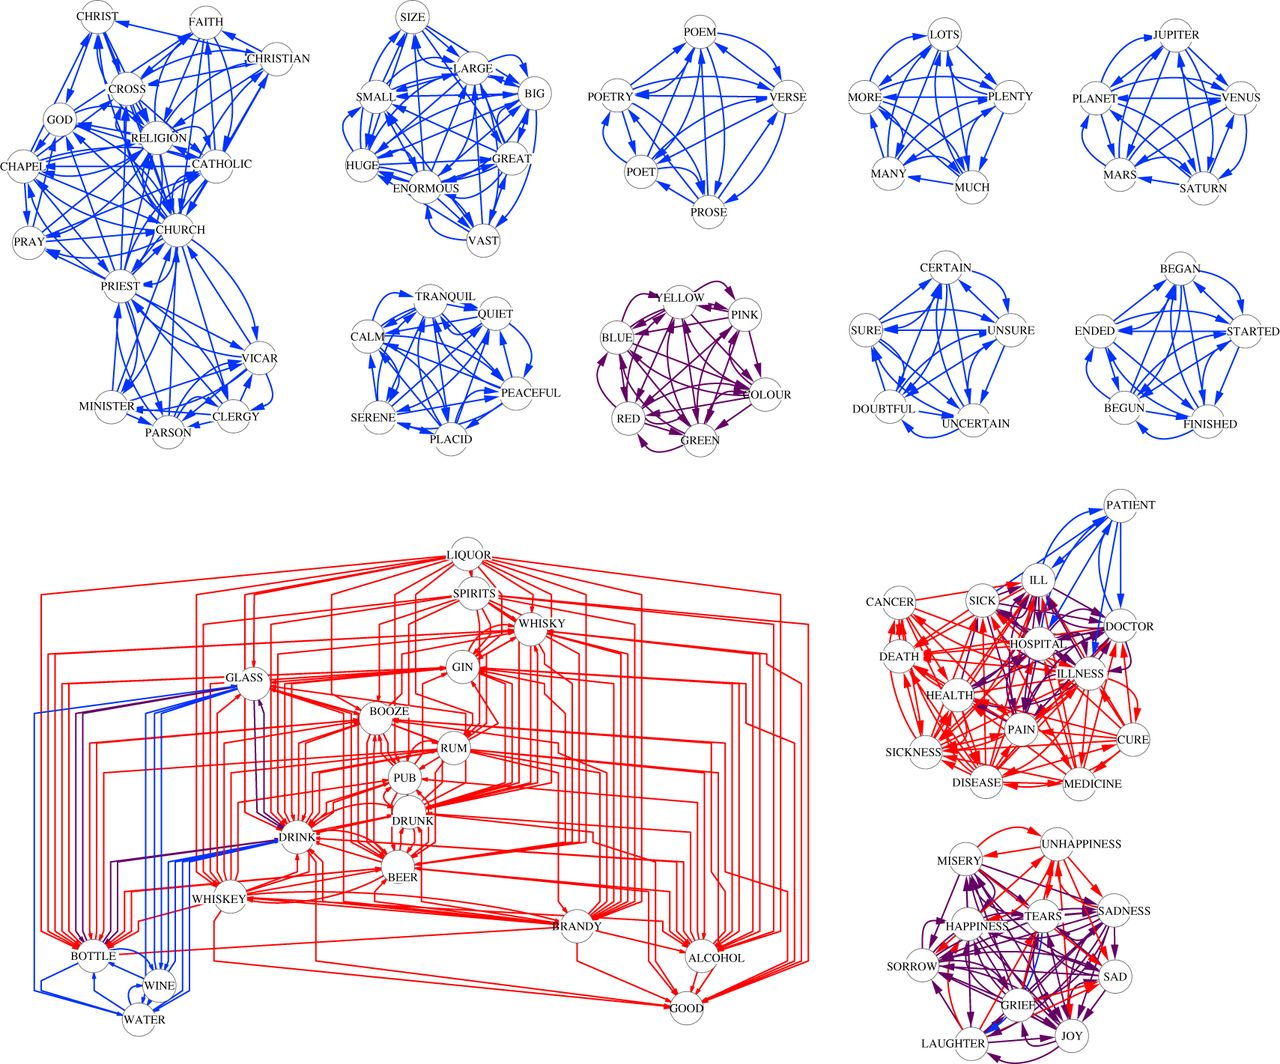 Cycle and flow trusses in directed networks.